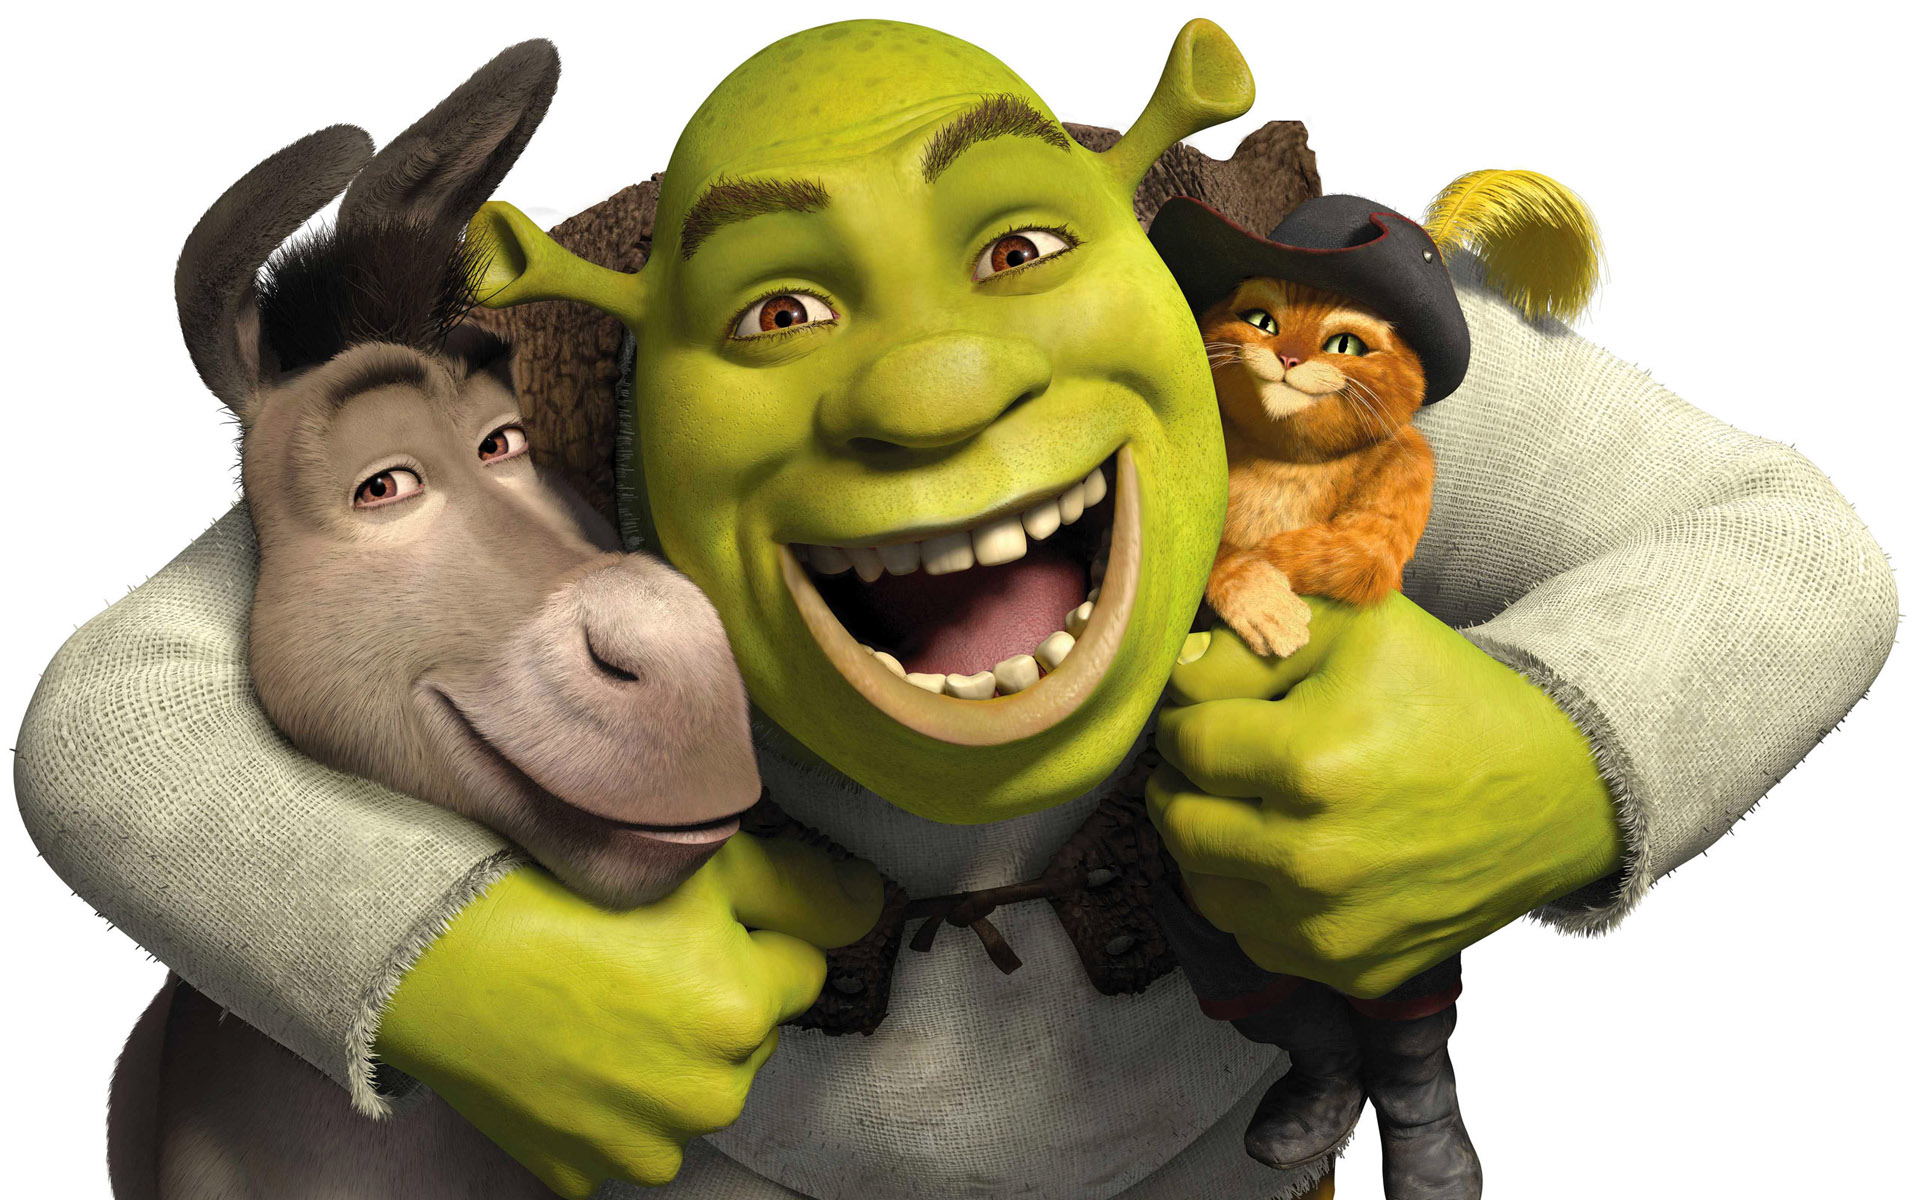 shrek-wallpaper-4682-4919-hd-wallpapers